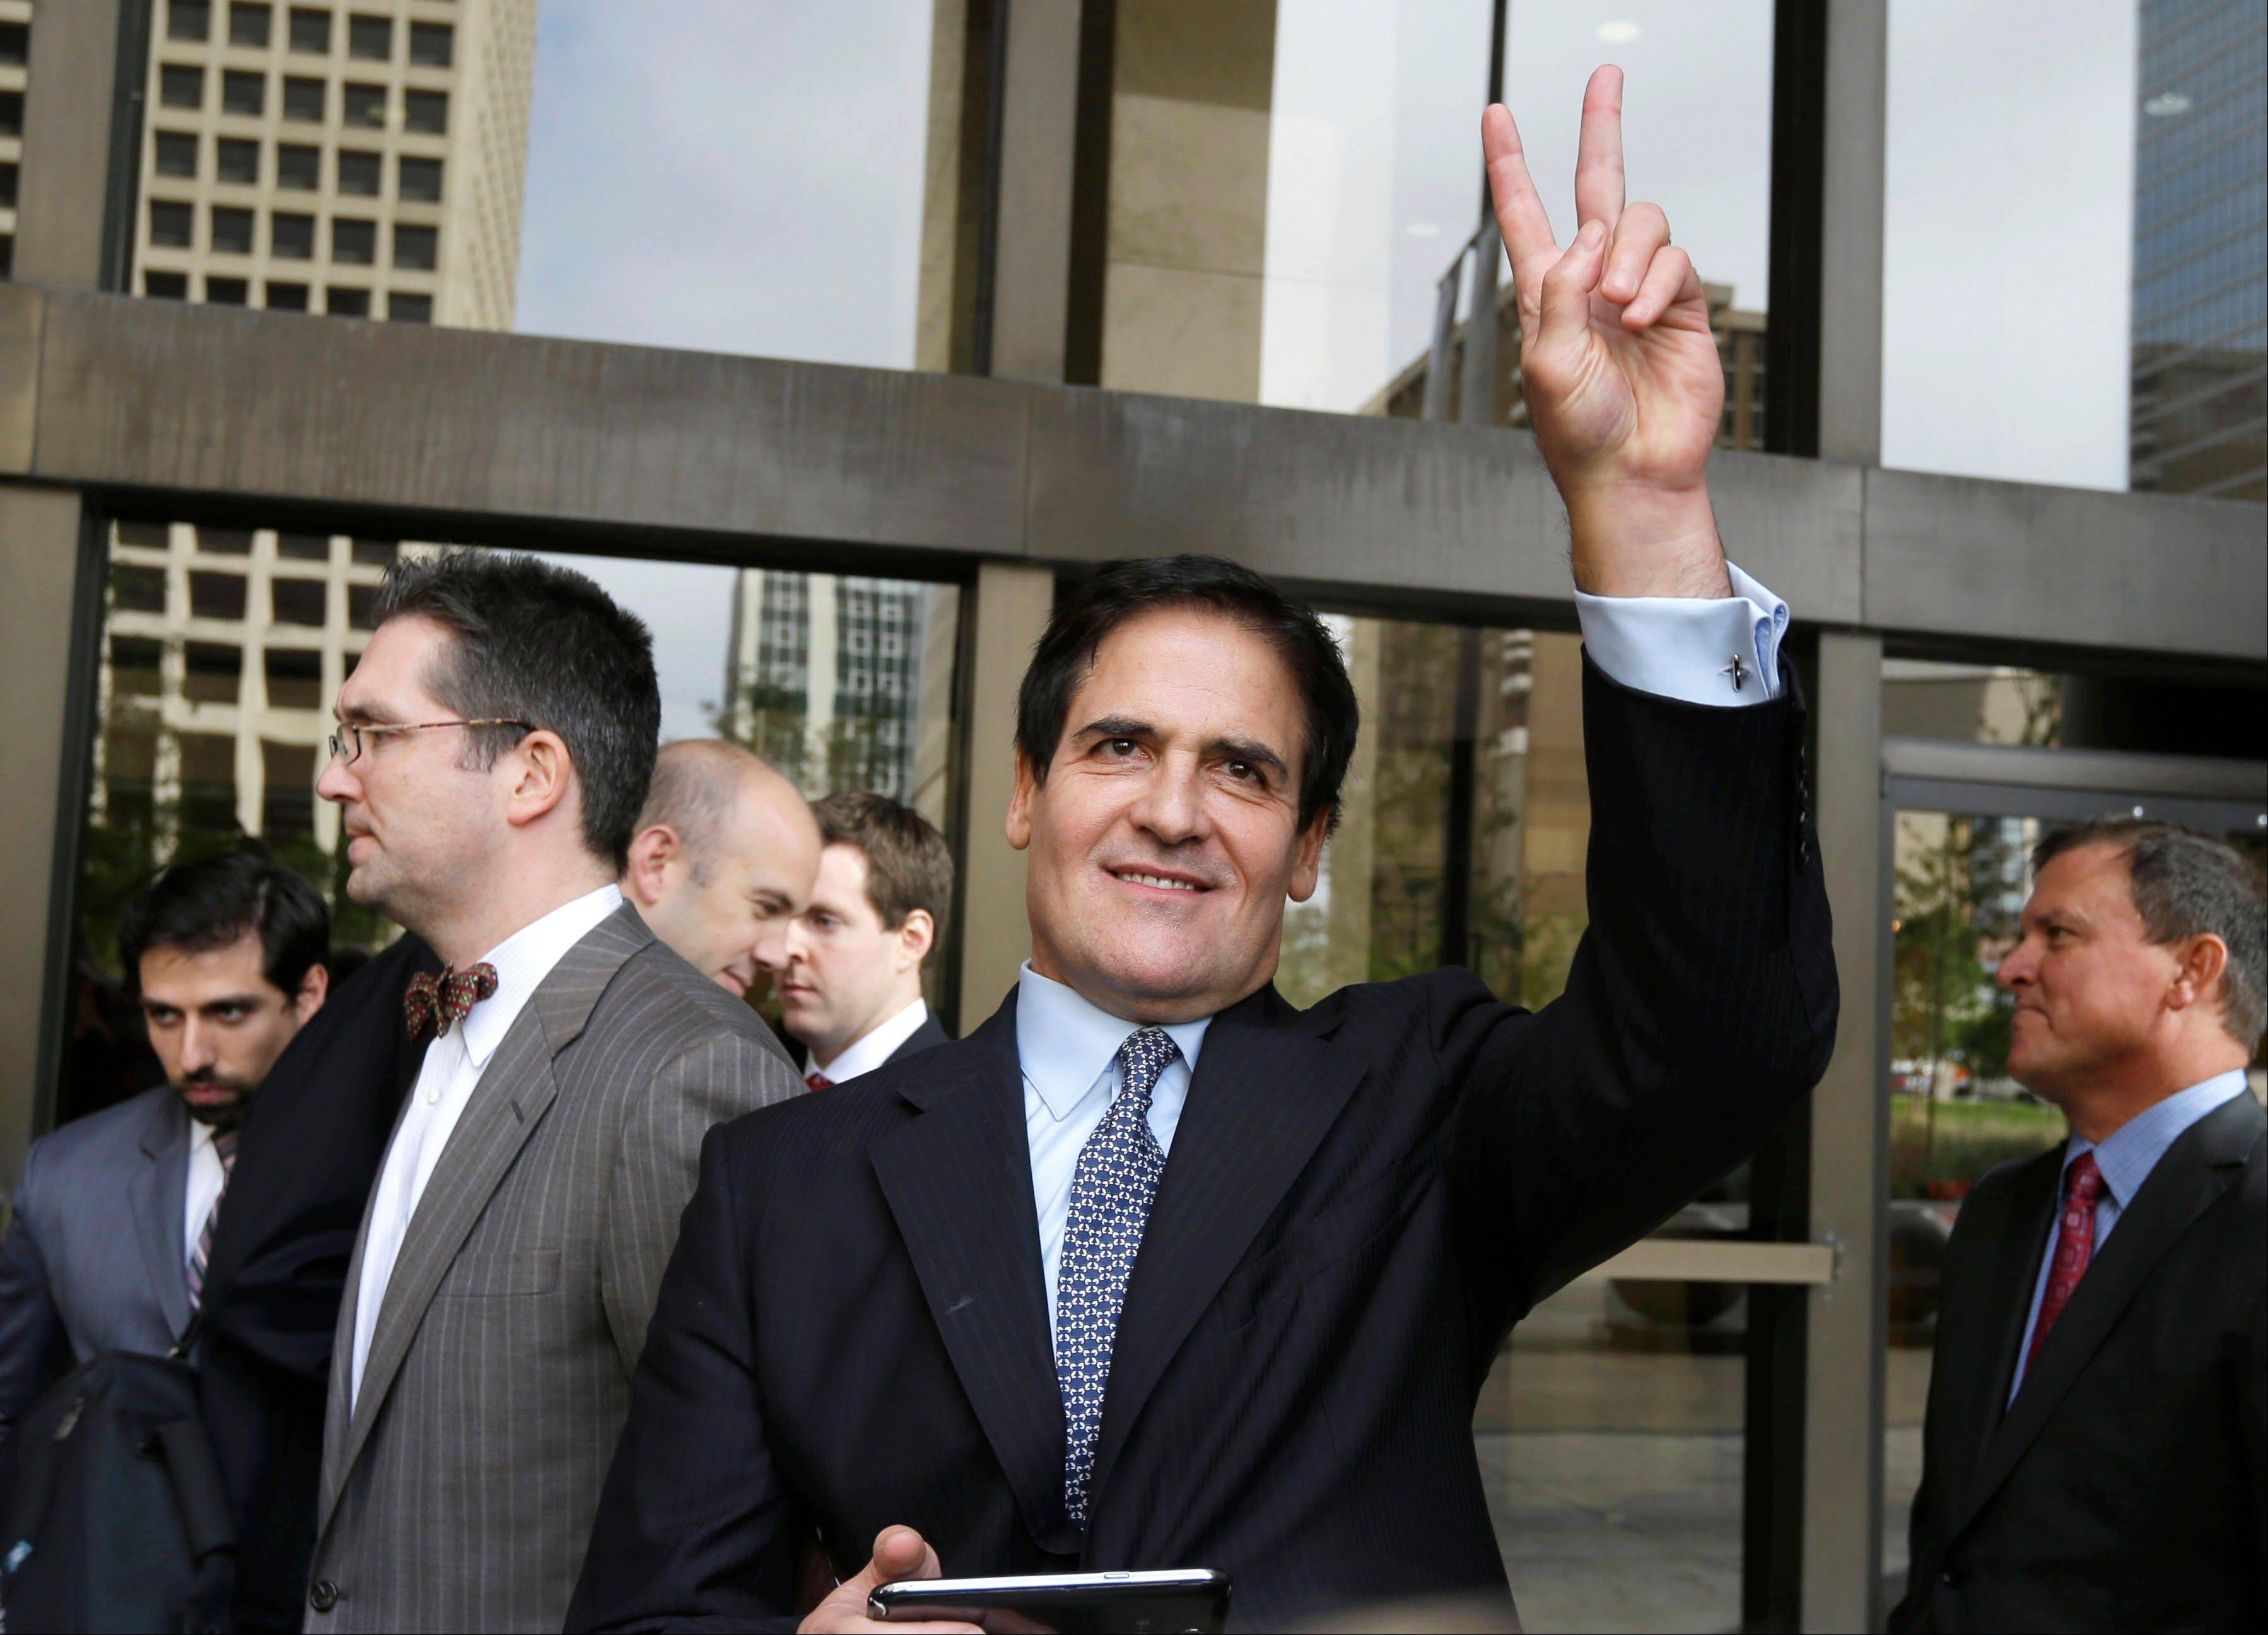 Mavericks team owner Mark Cuban gives a victory sign outside the federal courthouse Wednesday after the verdict in his insider trading trial in Dallas.